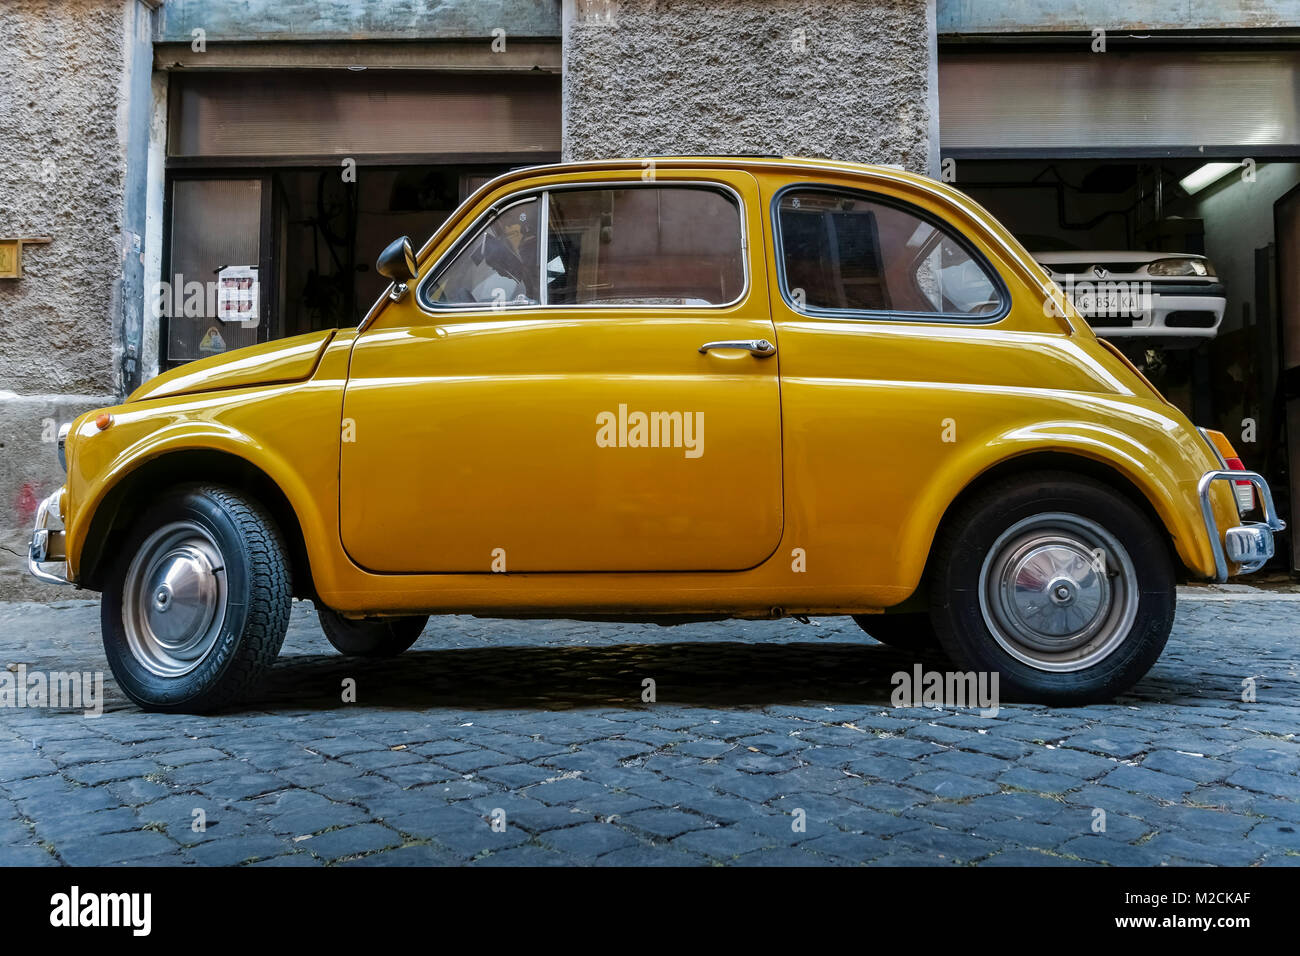 Fiat 500 fabricated in 1970. Old style, classic, vintage, retro car. Yellow color. Parked outside an auto repair - Stock Image